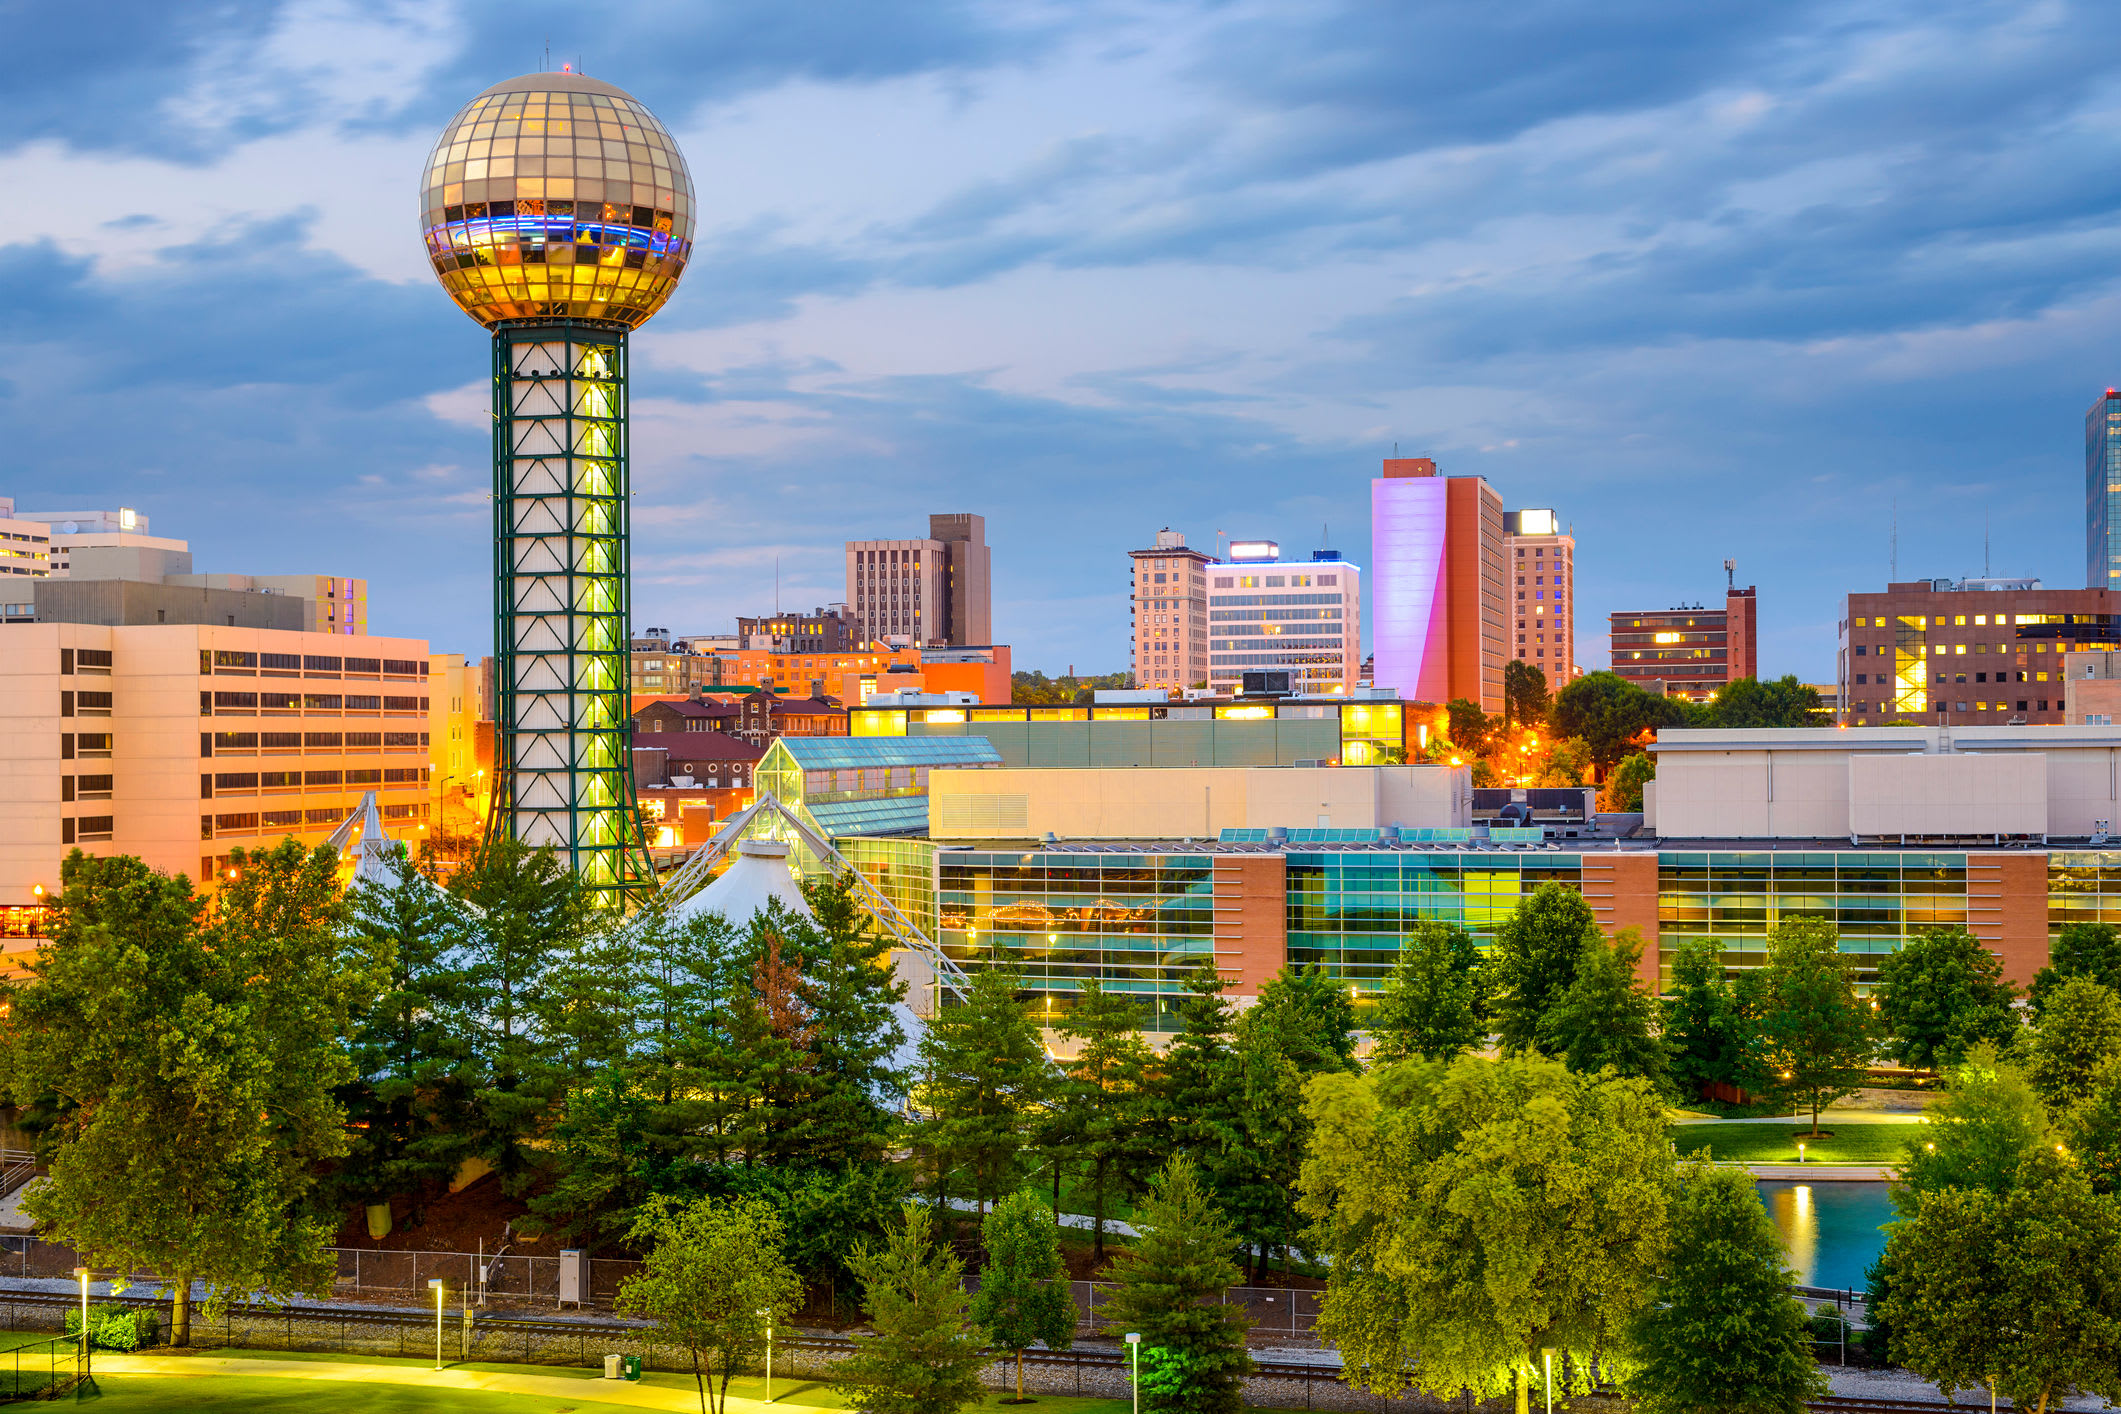 Stunning Knoxville, Tennessee skyline